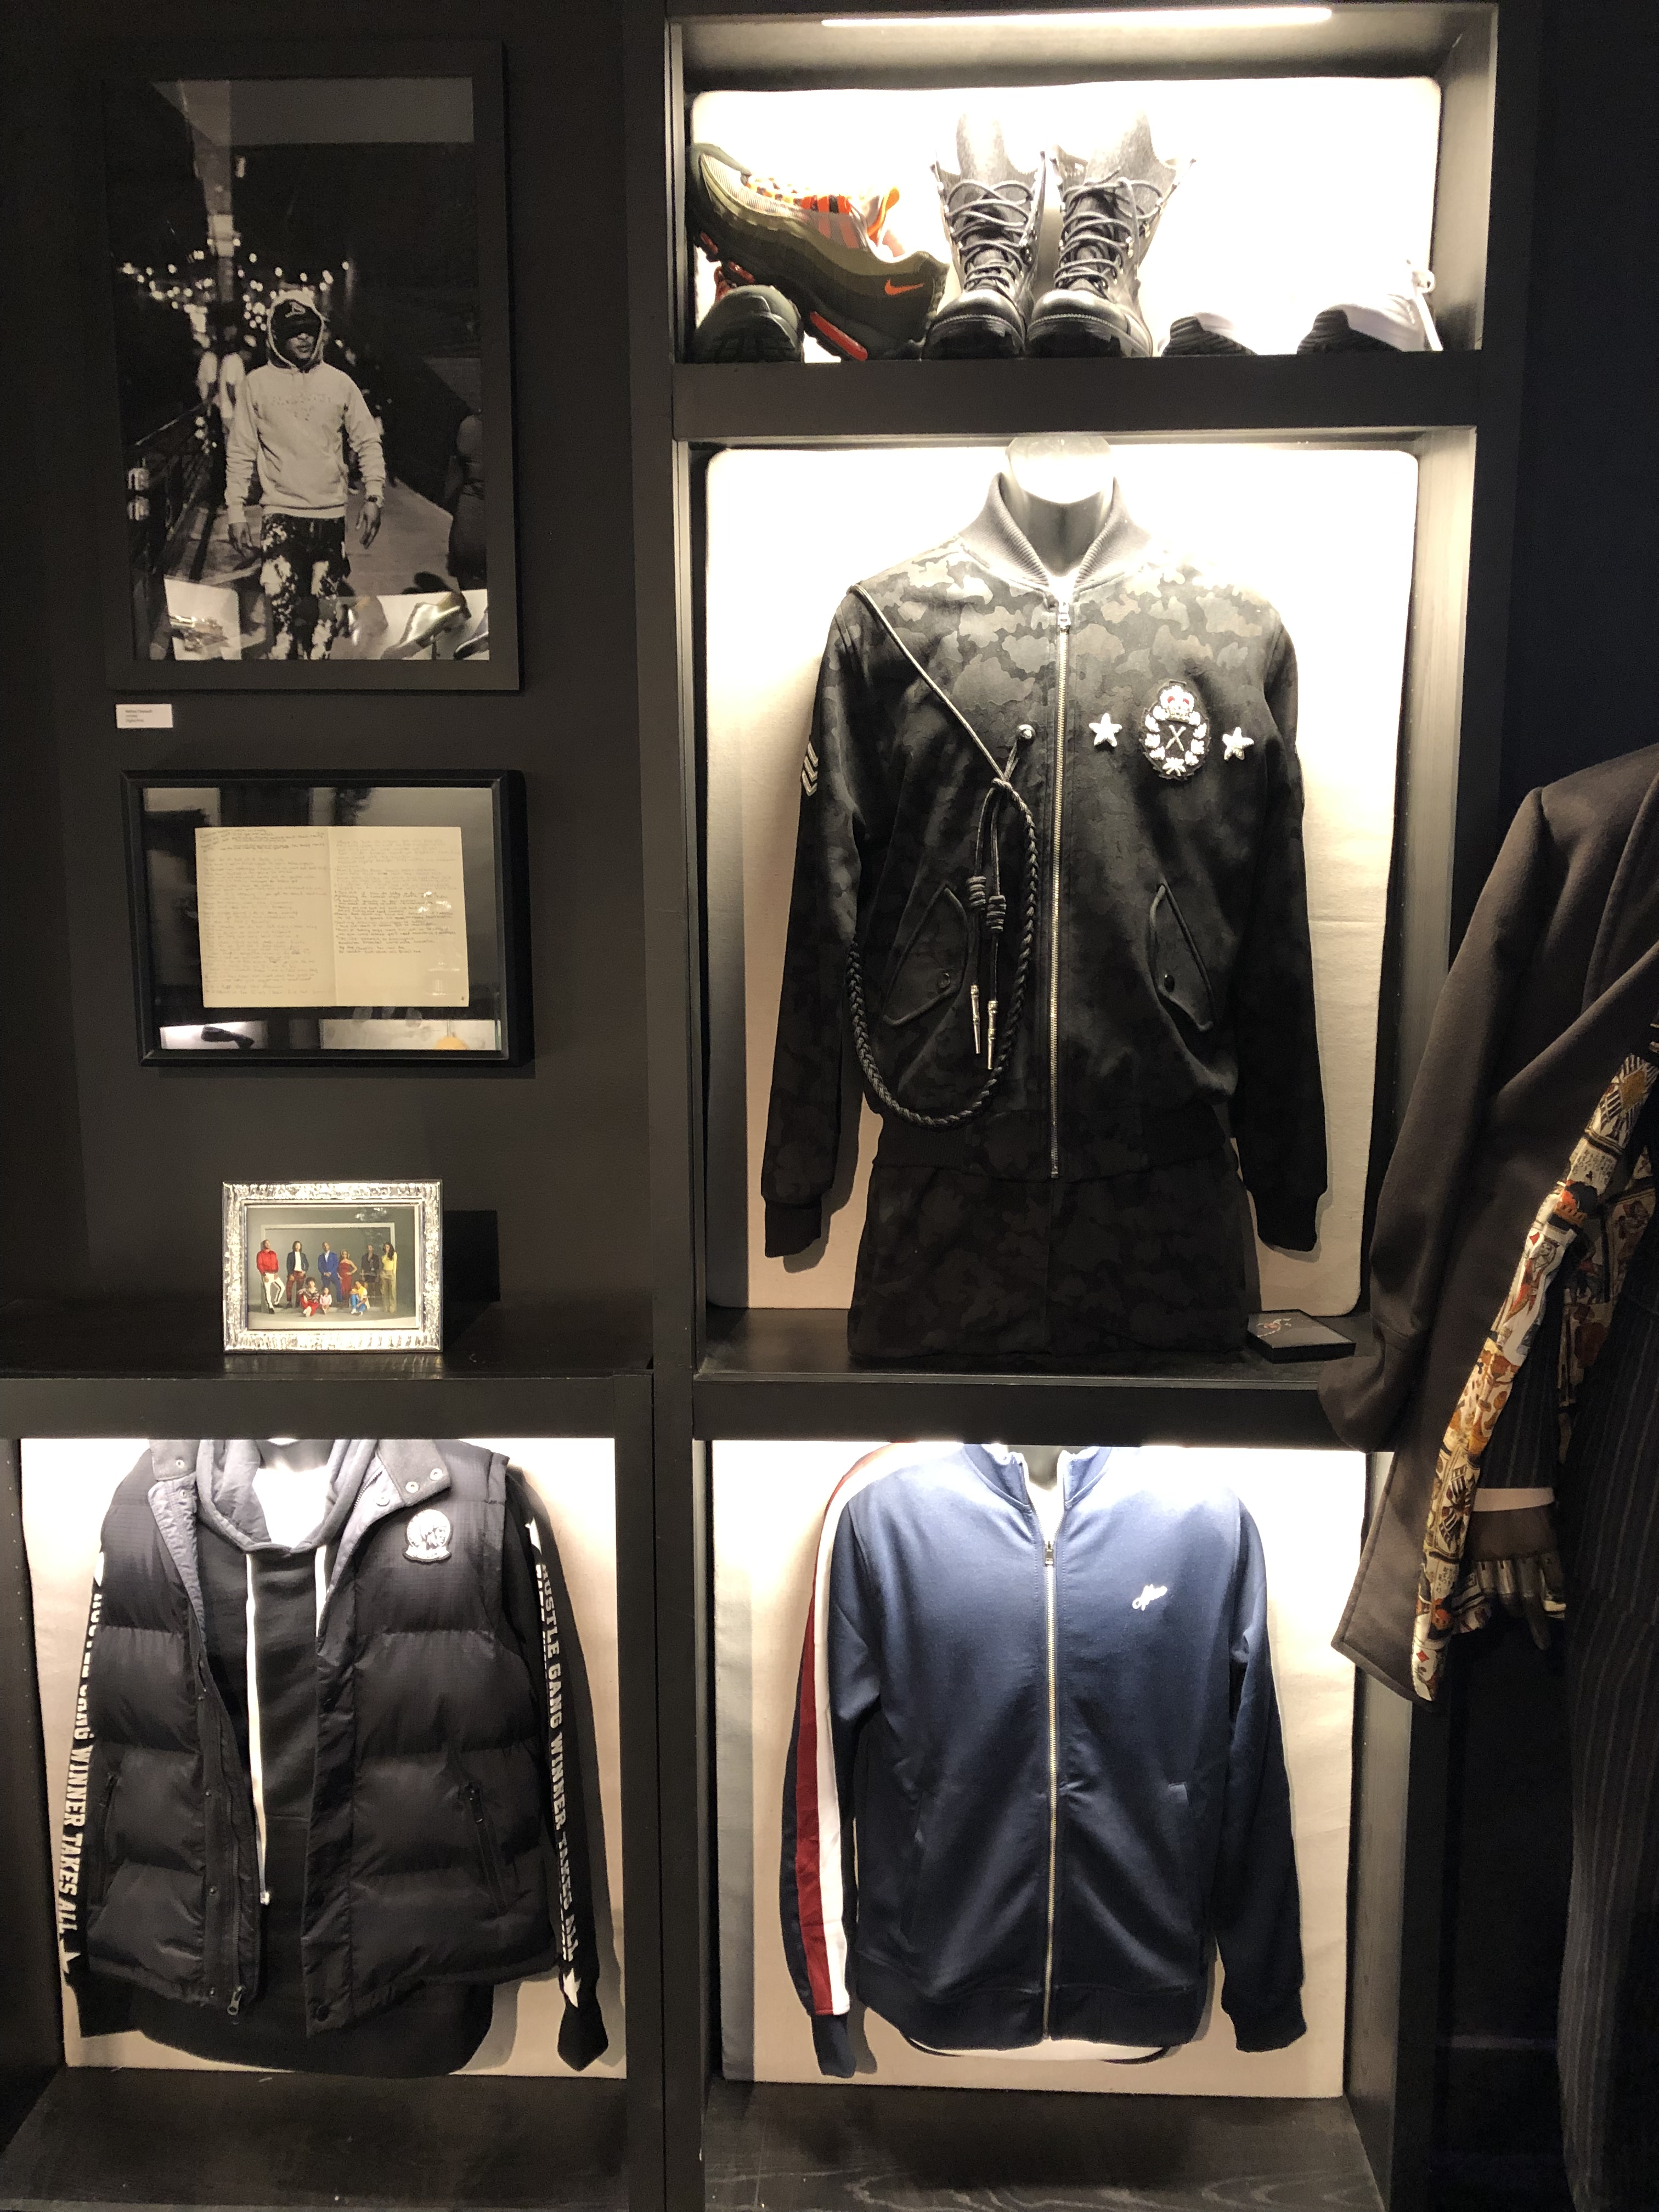 Atlanta Trap Music Museum – The Travelling Southern Belle